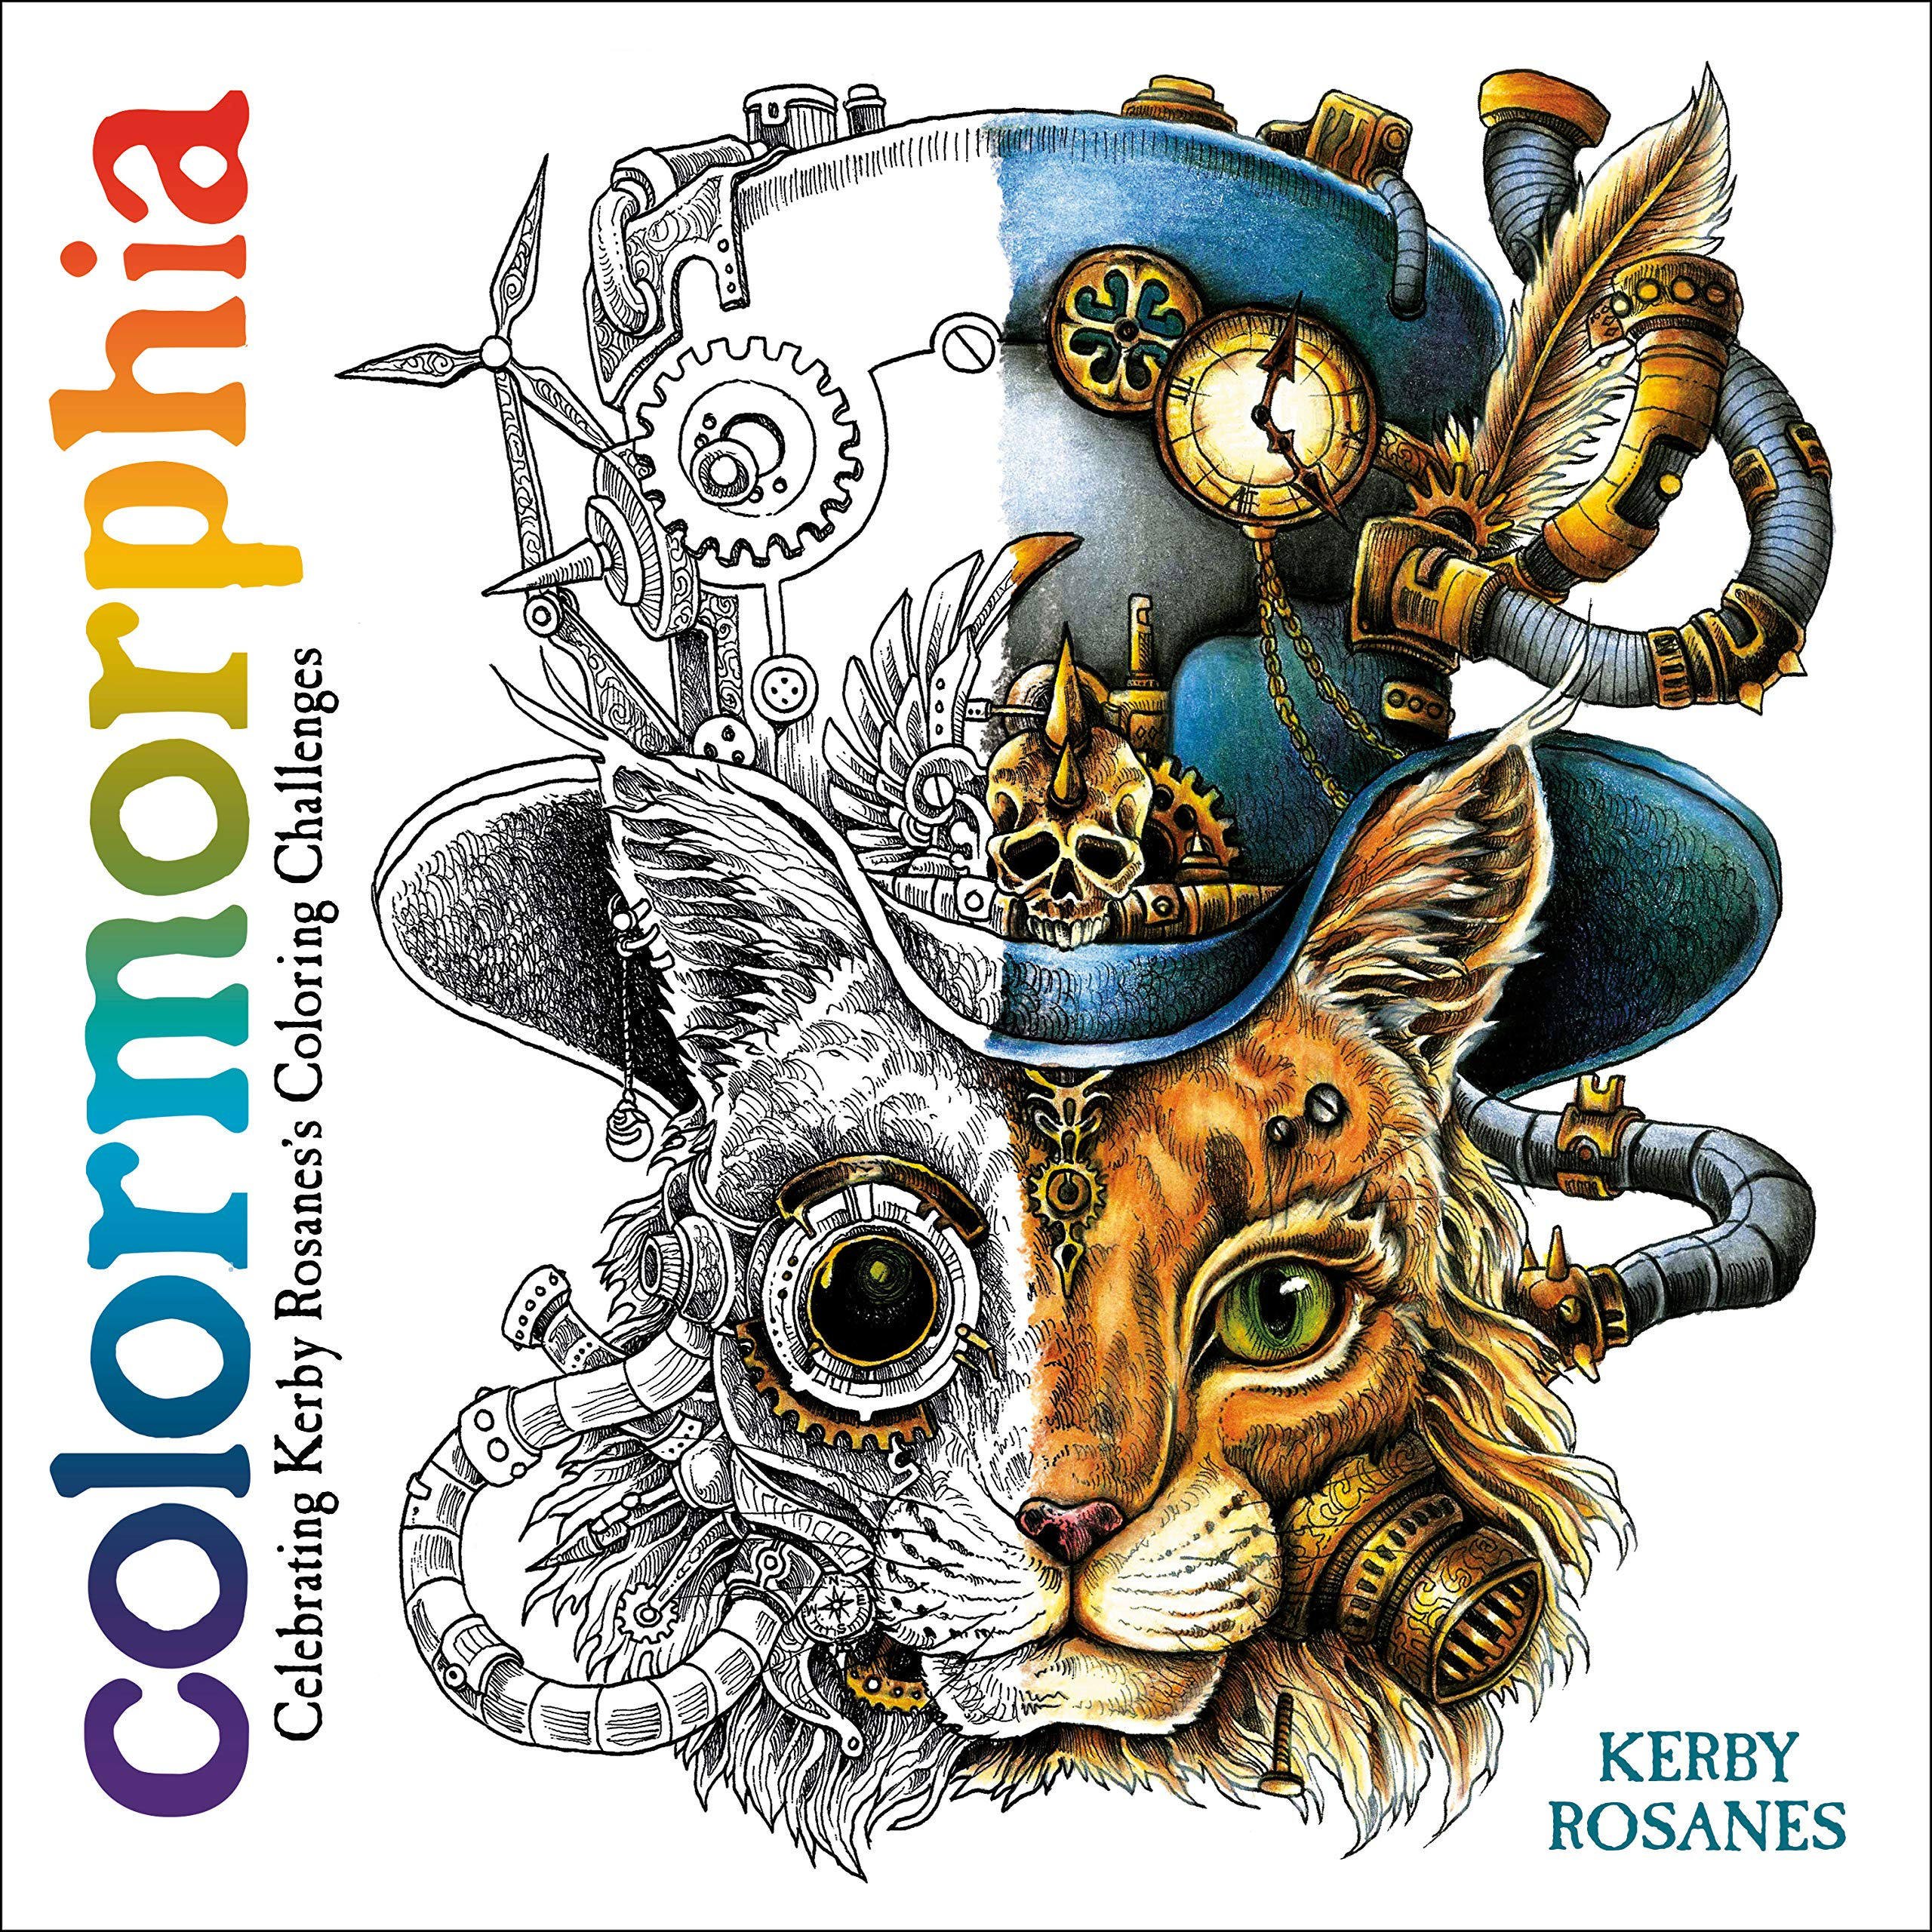 colormorphia celebrating kerby rosaness coloring challenges